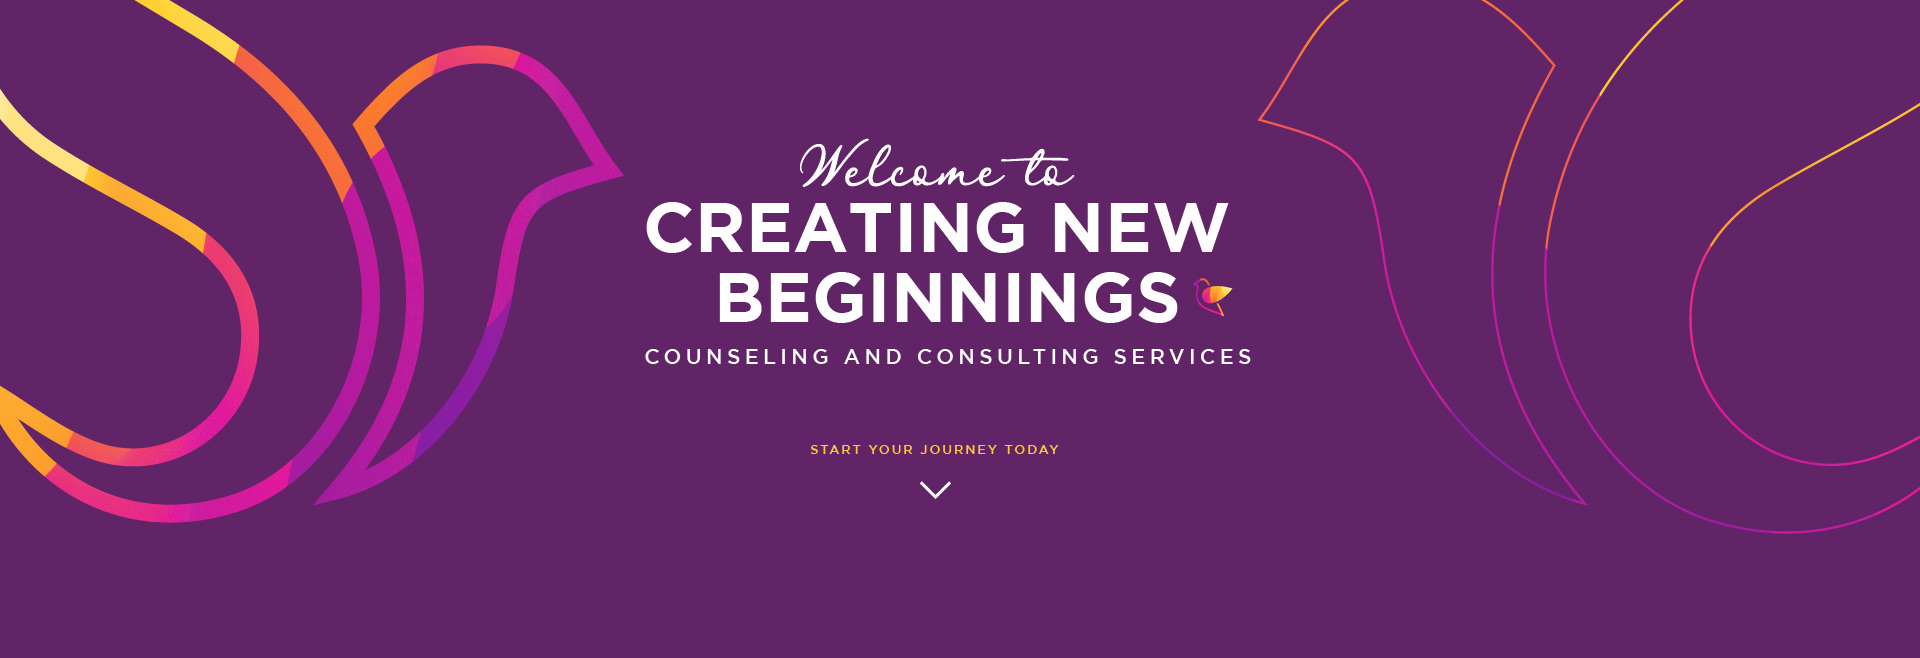 Creating New Beginnings